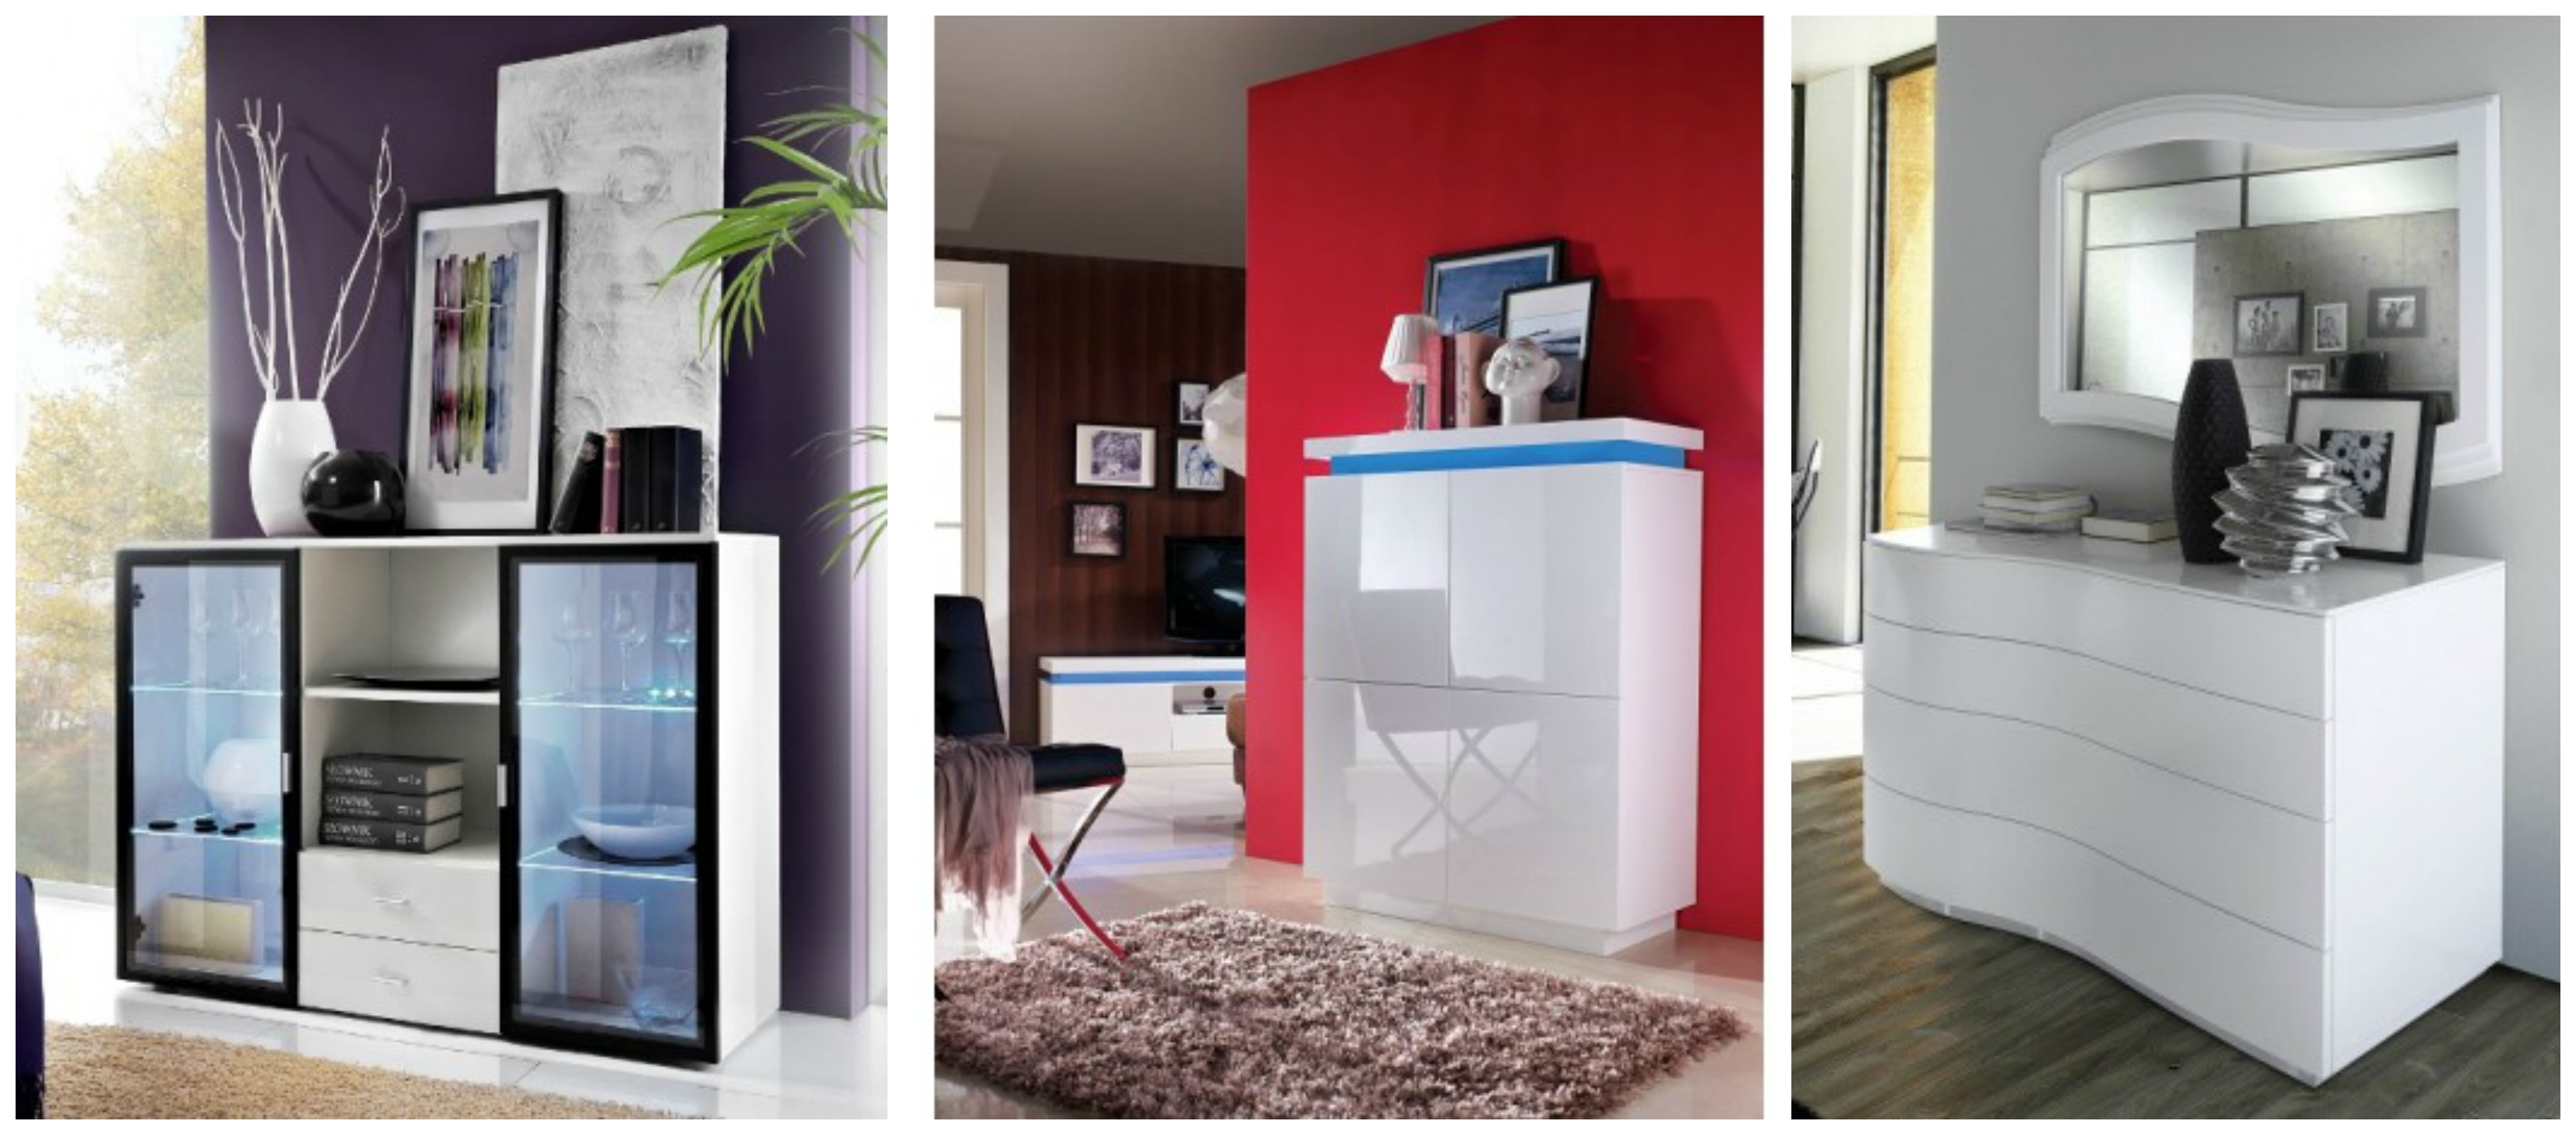 Ideal sideboard: See INSPIRATIONS for any interior!